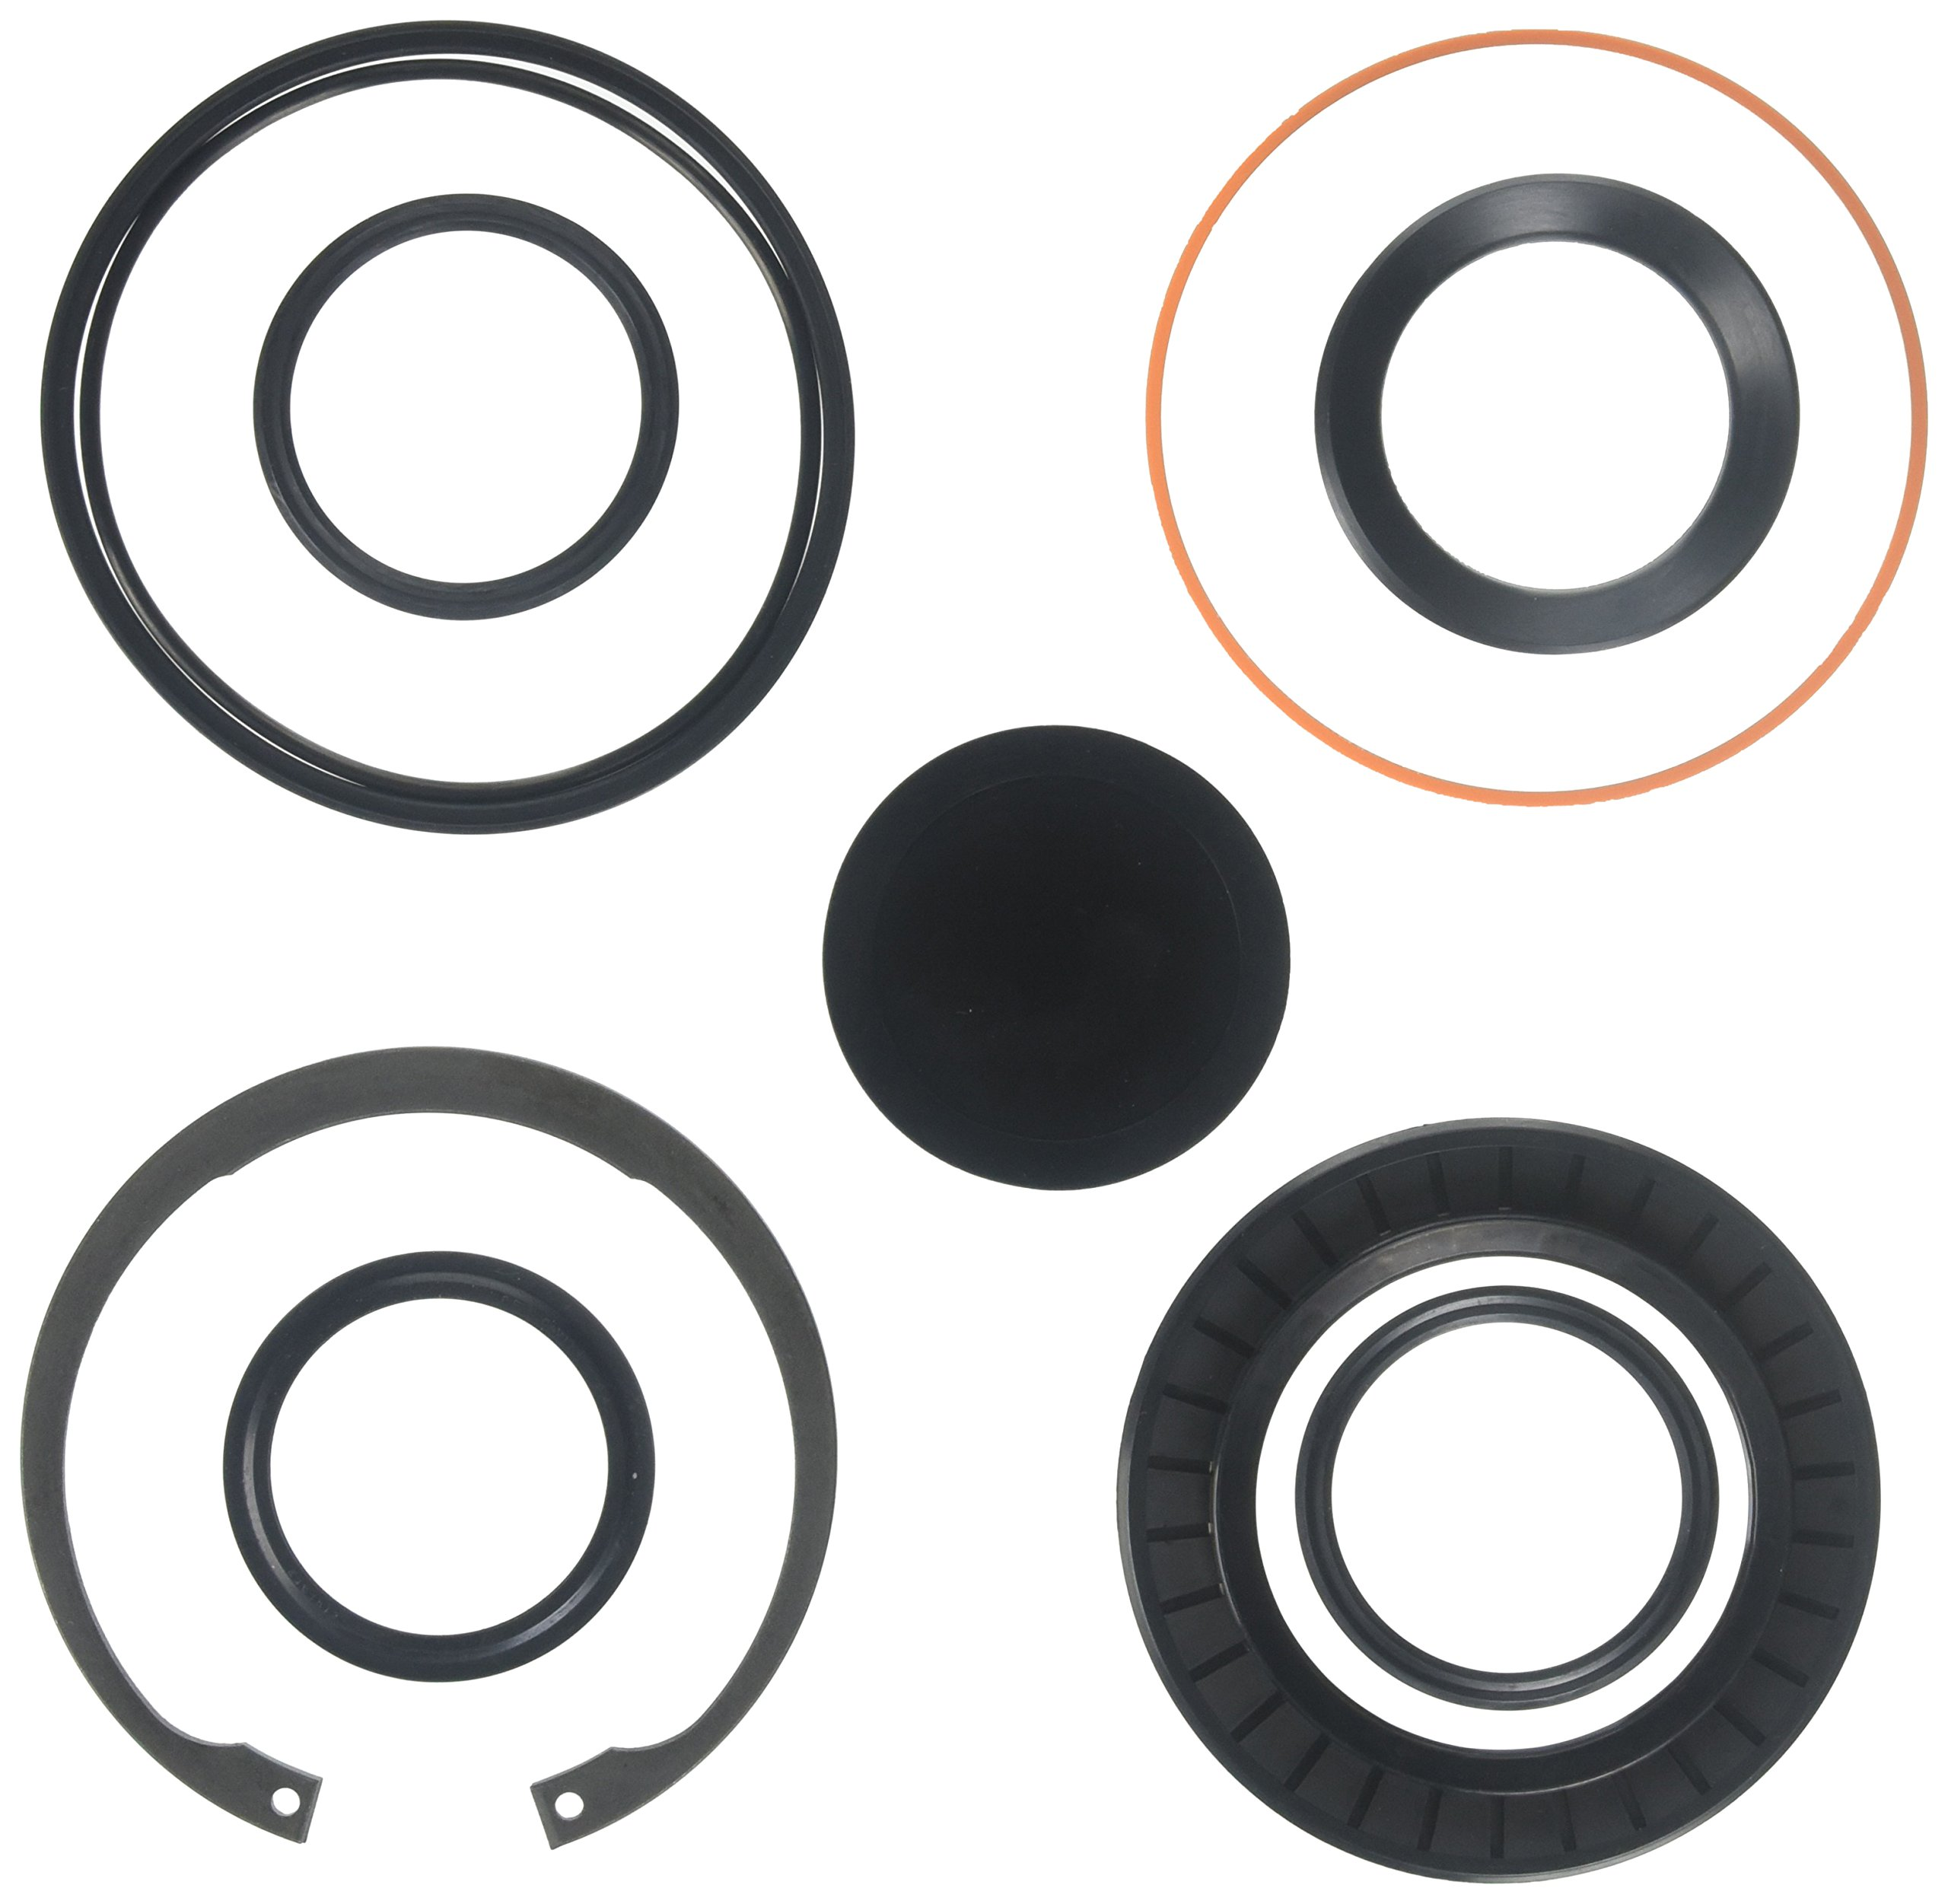 R. H. Sheppard 5545481 Sector Shaft Kit with Snap Ring/L-Seal